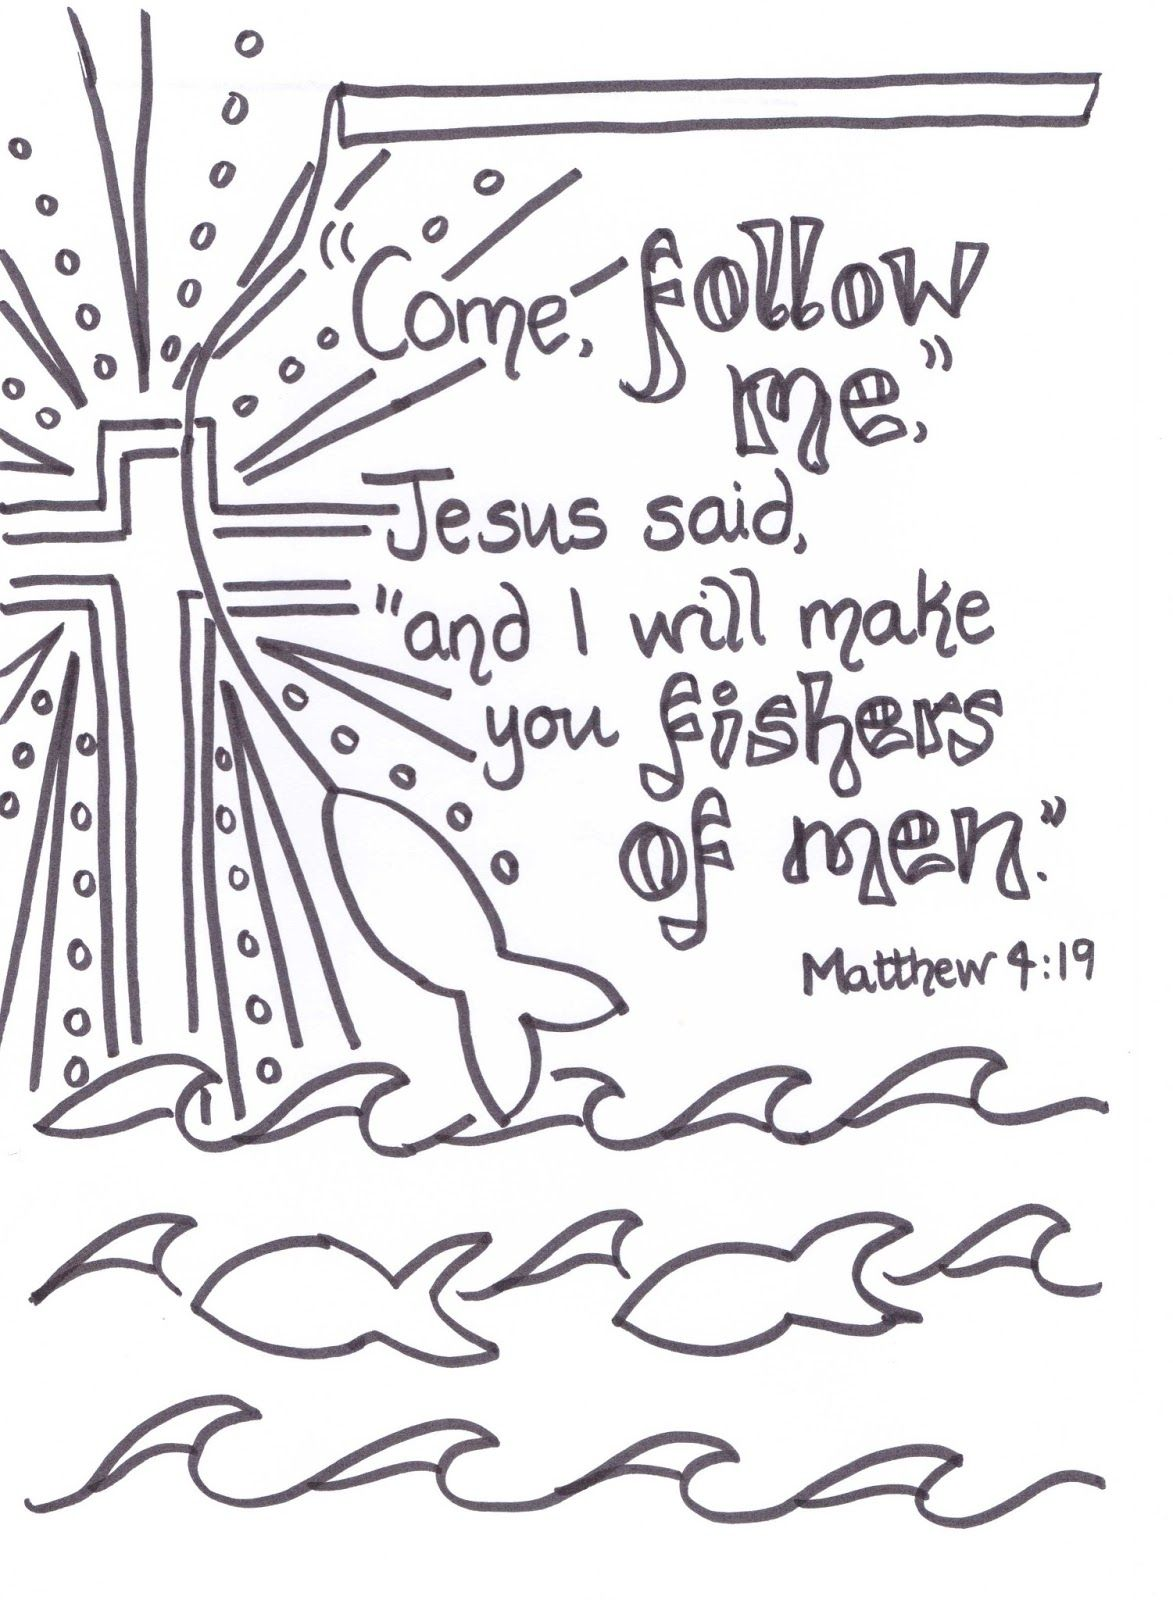 Flame  Creative Children's Ministry  Fishers Of Men Verse To